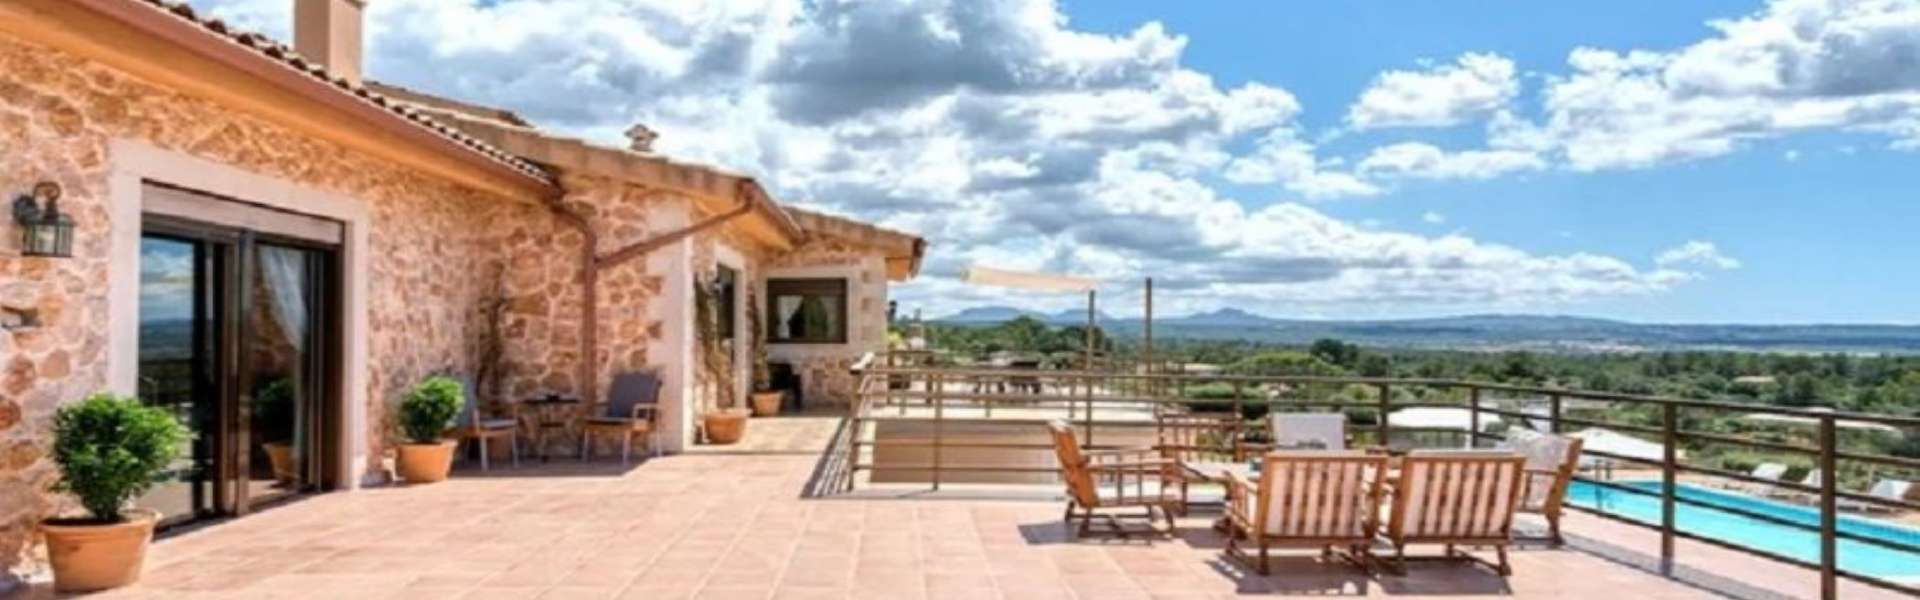 Palma/Es Puntiró - Finca with panoramic views and vacation rental license